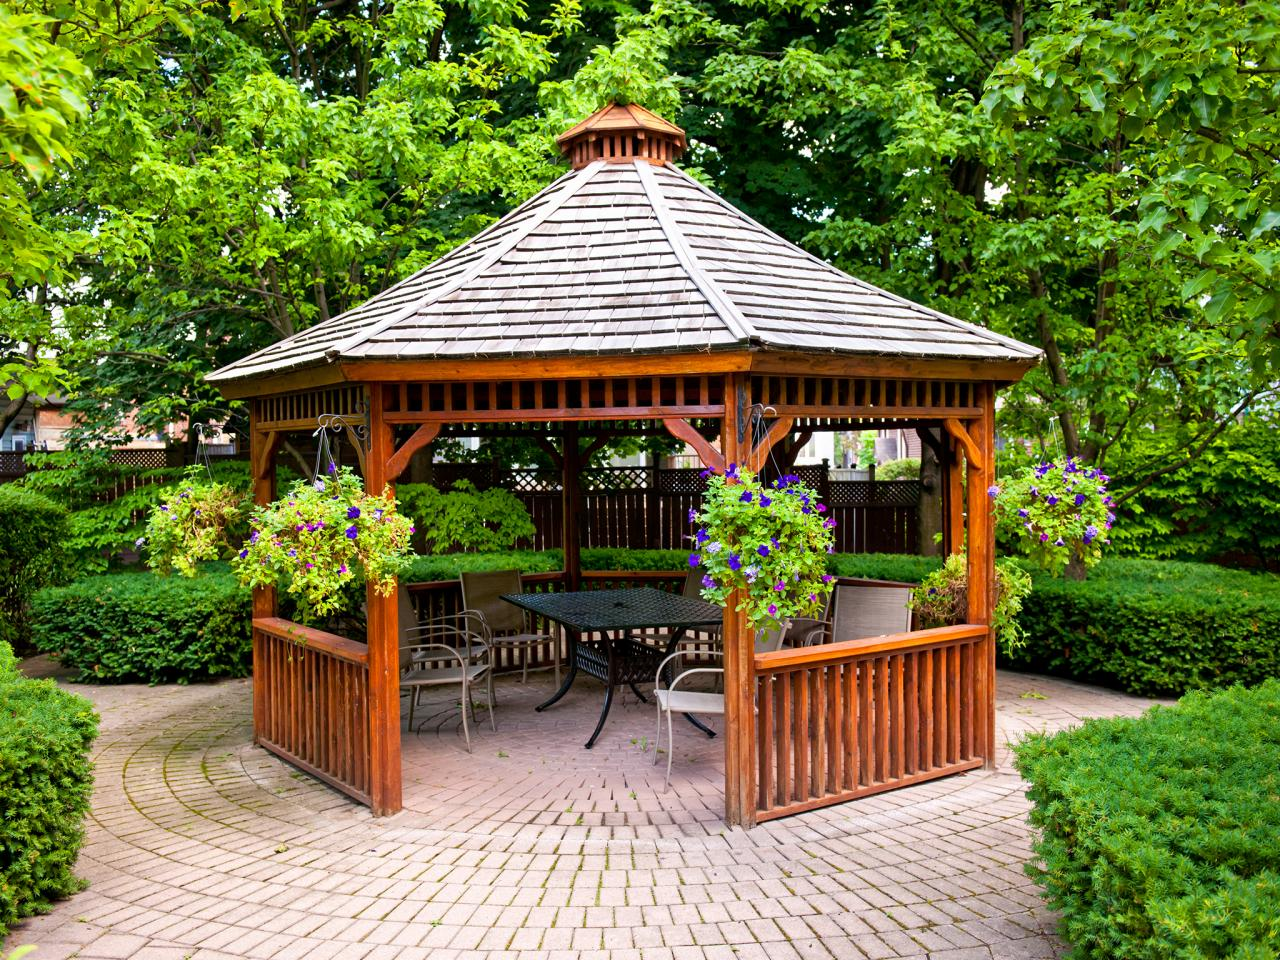 Outdoor Design Ideas outdoor kitchen design ideas Patio Gazebos